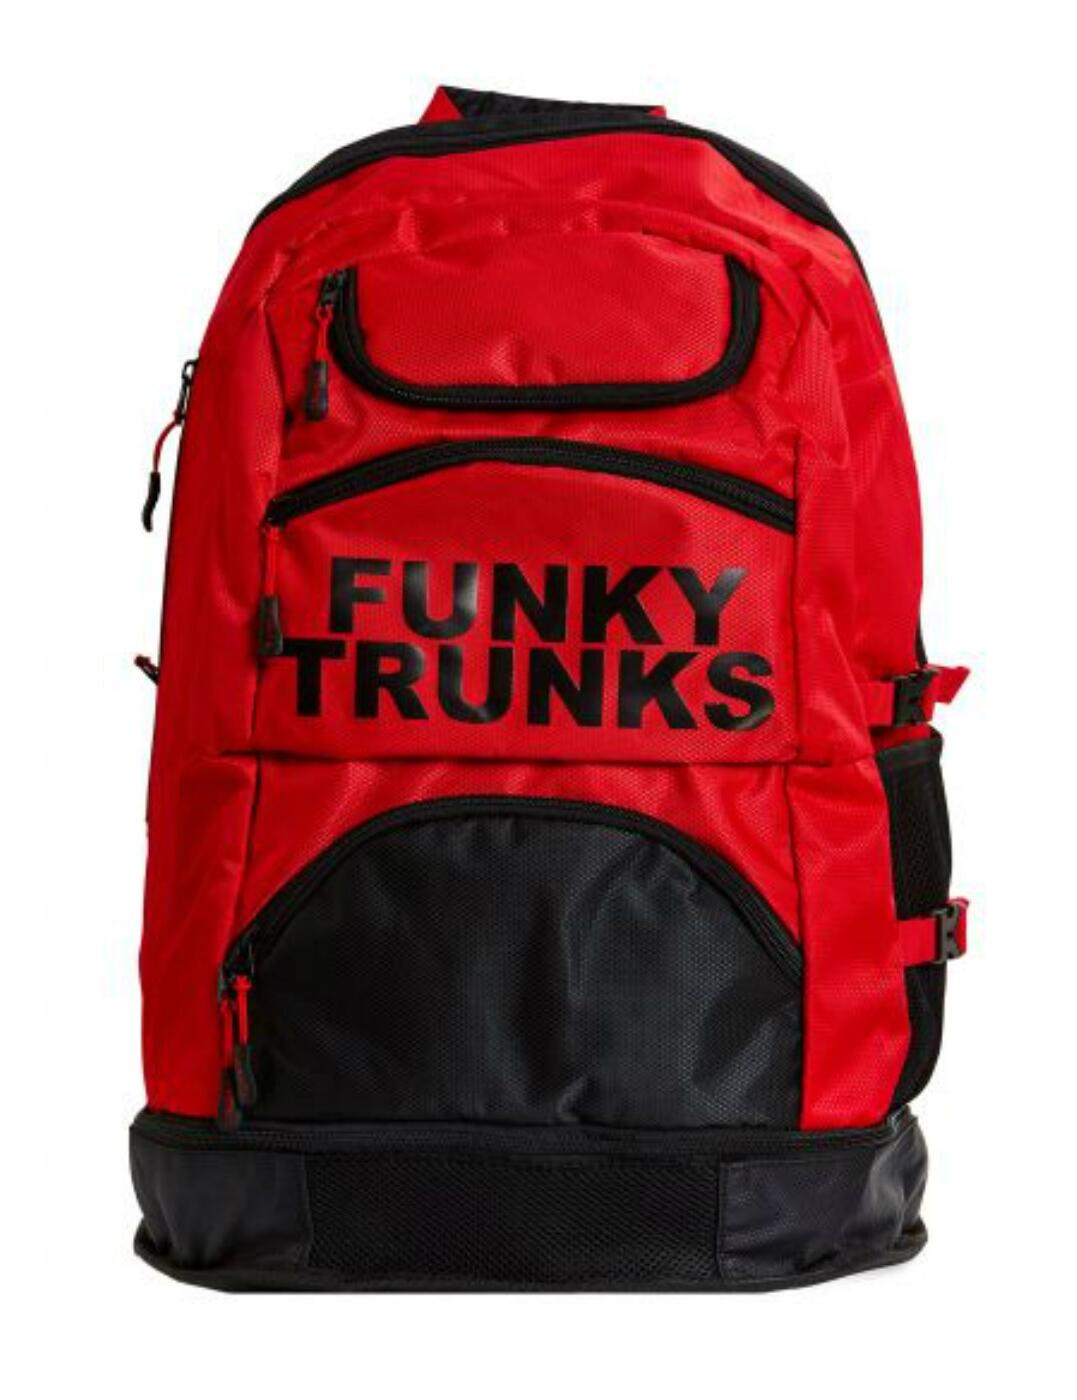 FTG003N Funky Trunks Accessories Elite Squad Backpack - FTG003N02020 Fire Storm